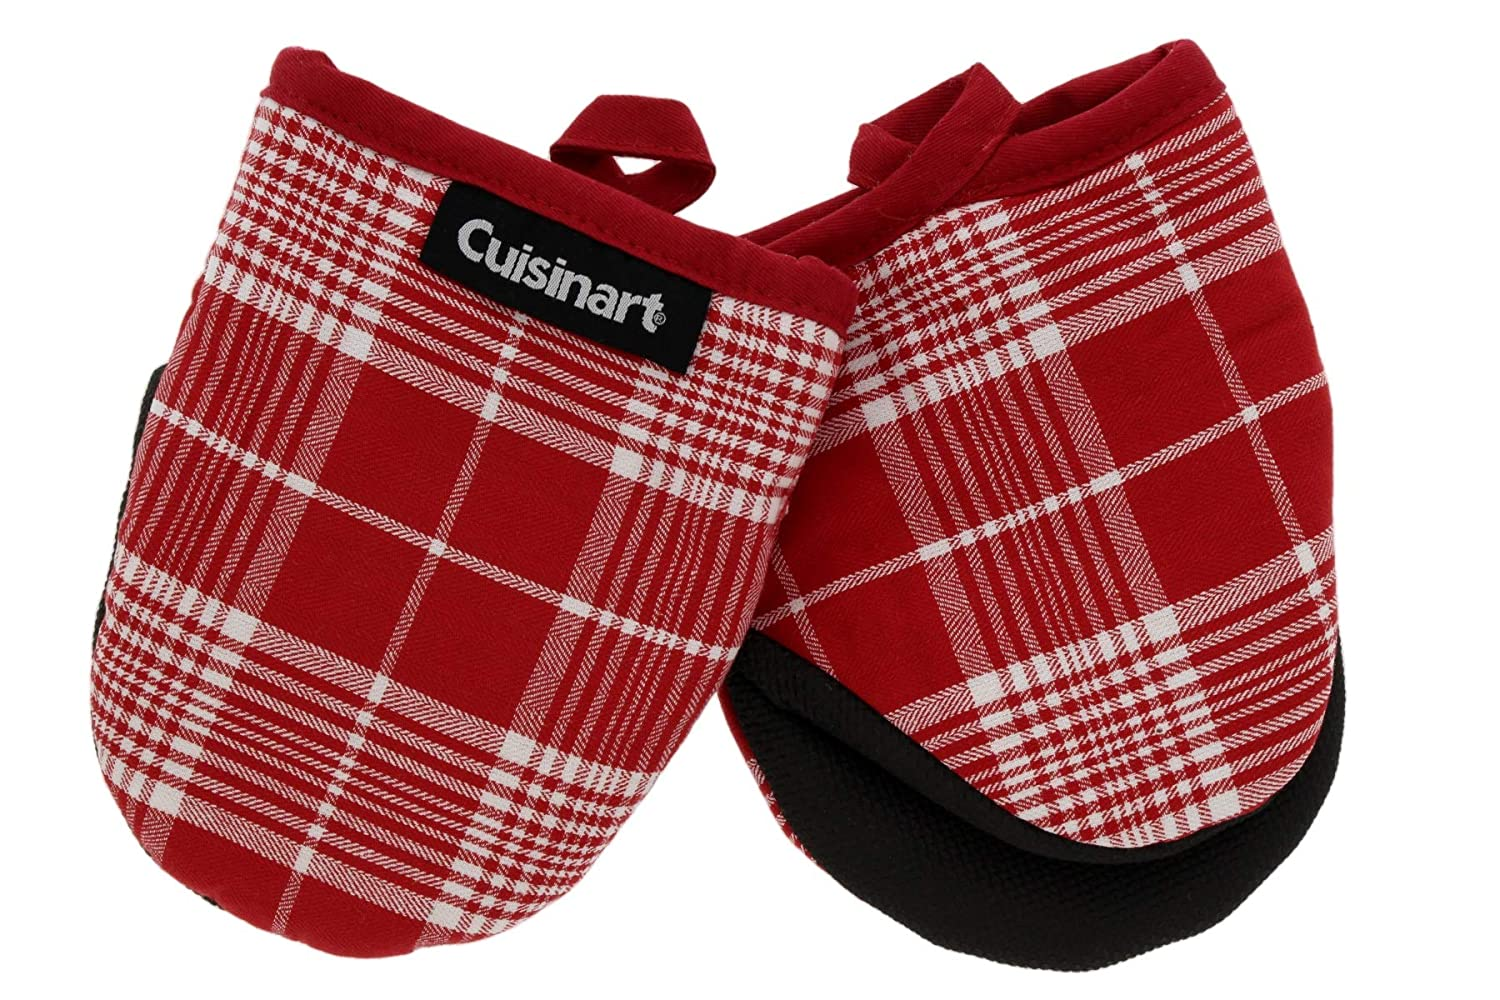 Cuisinart Neoprene Mini Oven Mitts, 2pk - Heat Resistant Oven Gloves Protect Hands and Surfaces with Non-Slip Grip and Hanging Loop-Ideal Set for Handling Hot Cookware, Bakeware- Glen Plaid, Salsa Red